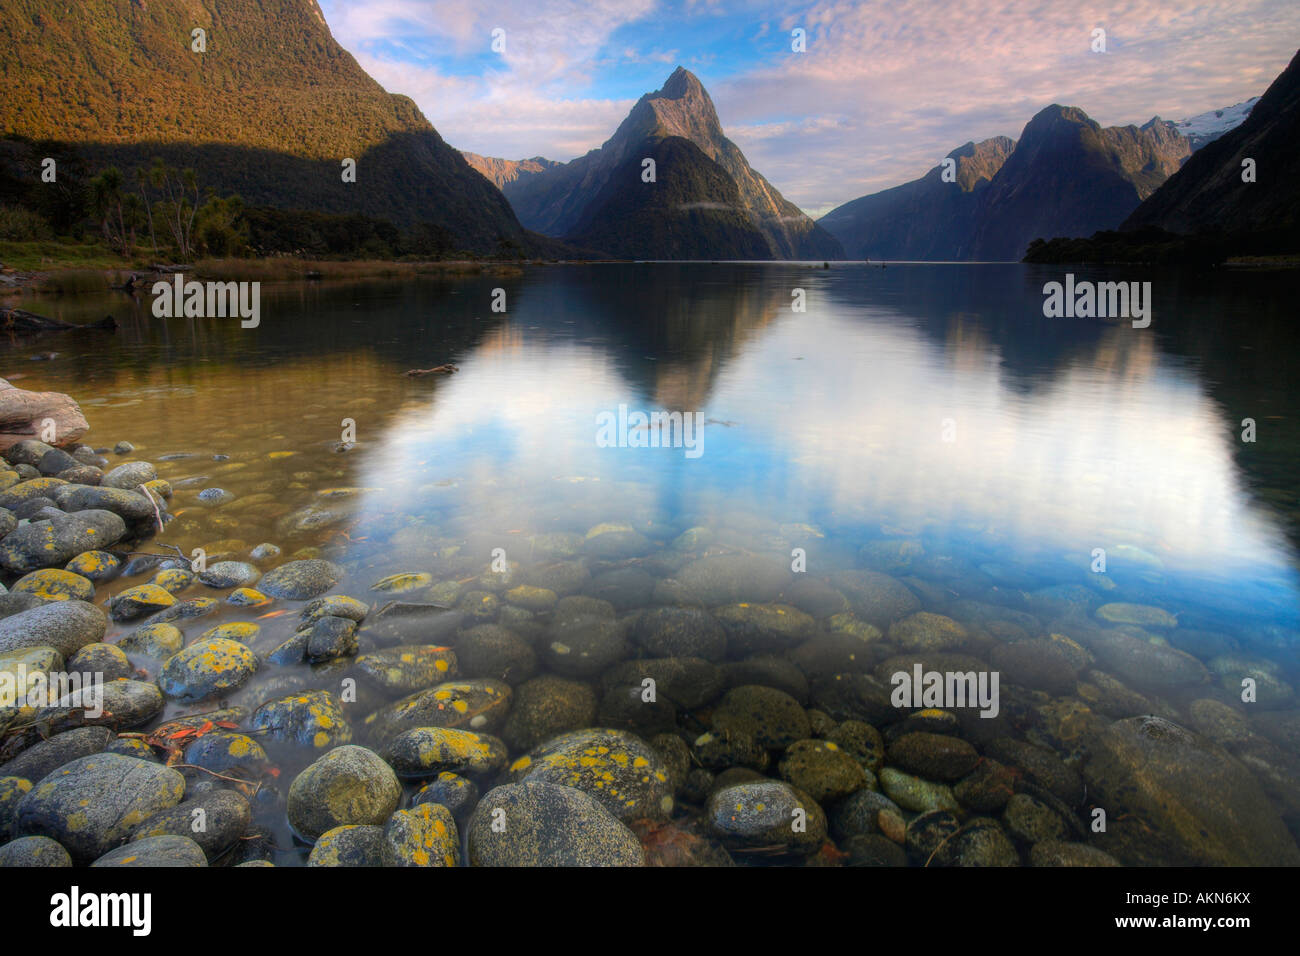 Mitre Peak rising out of the deep waters of Milford Sound, New Zealand - Stock Image